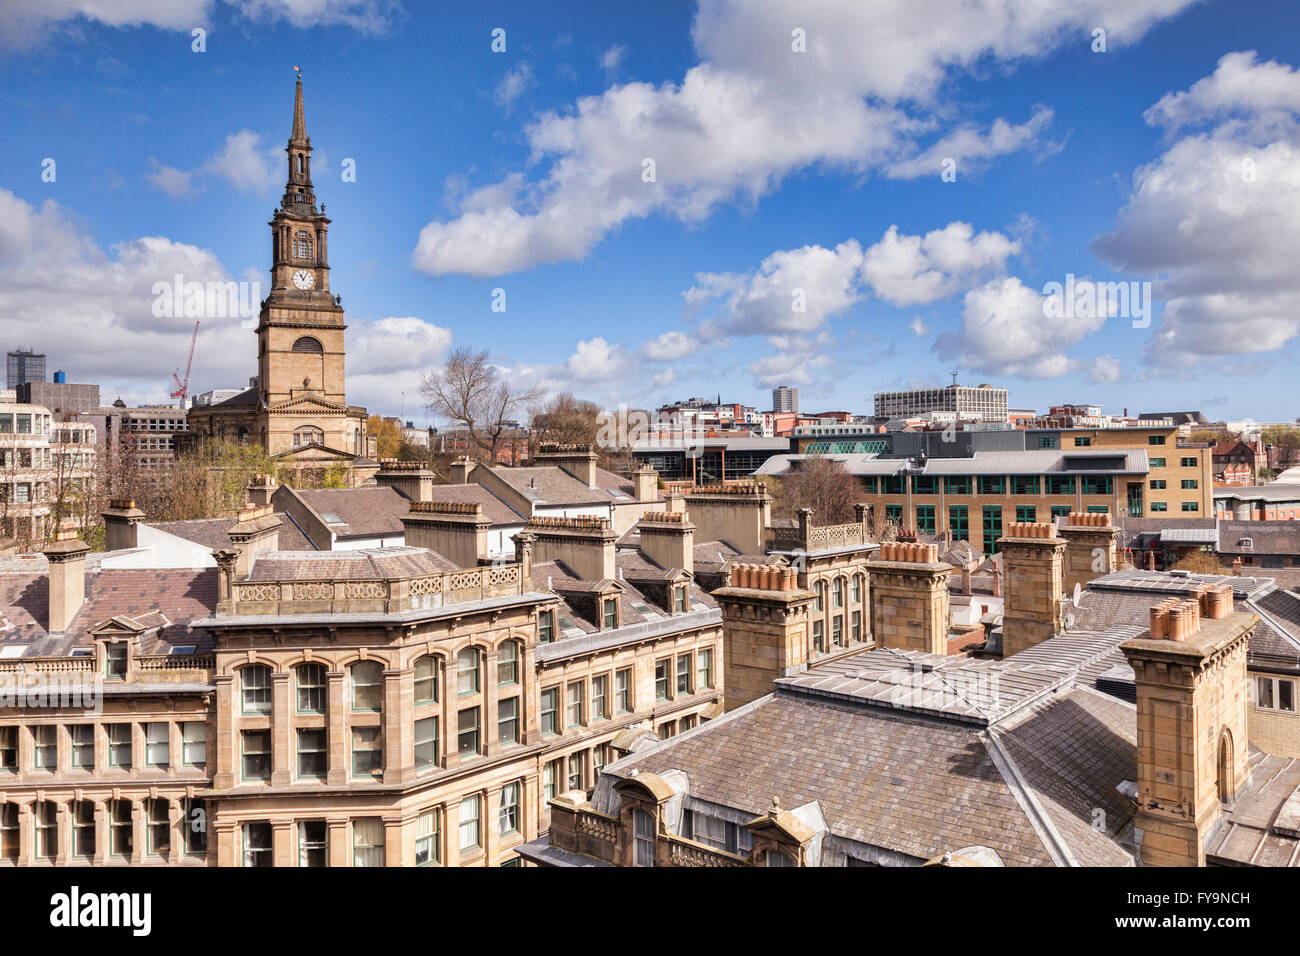 A view over the roof tops to All Saints Church, Newcastle-upon-Tyne, Tyne and Wear, England, UK Stock Photo